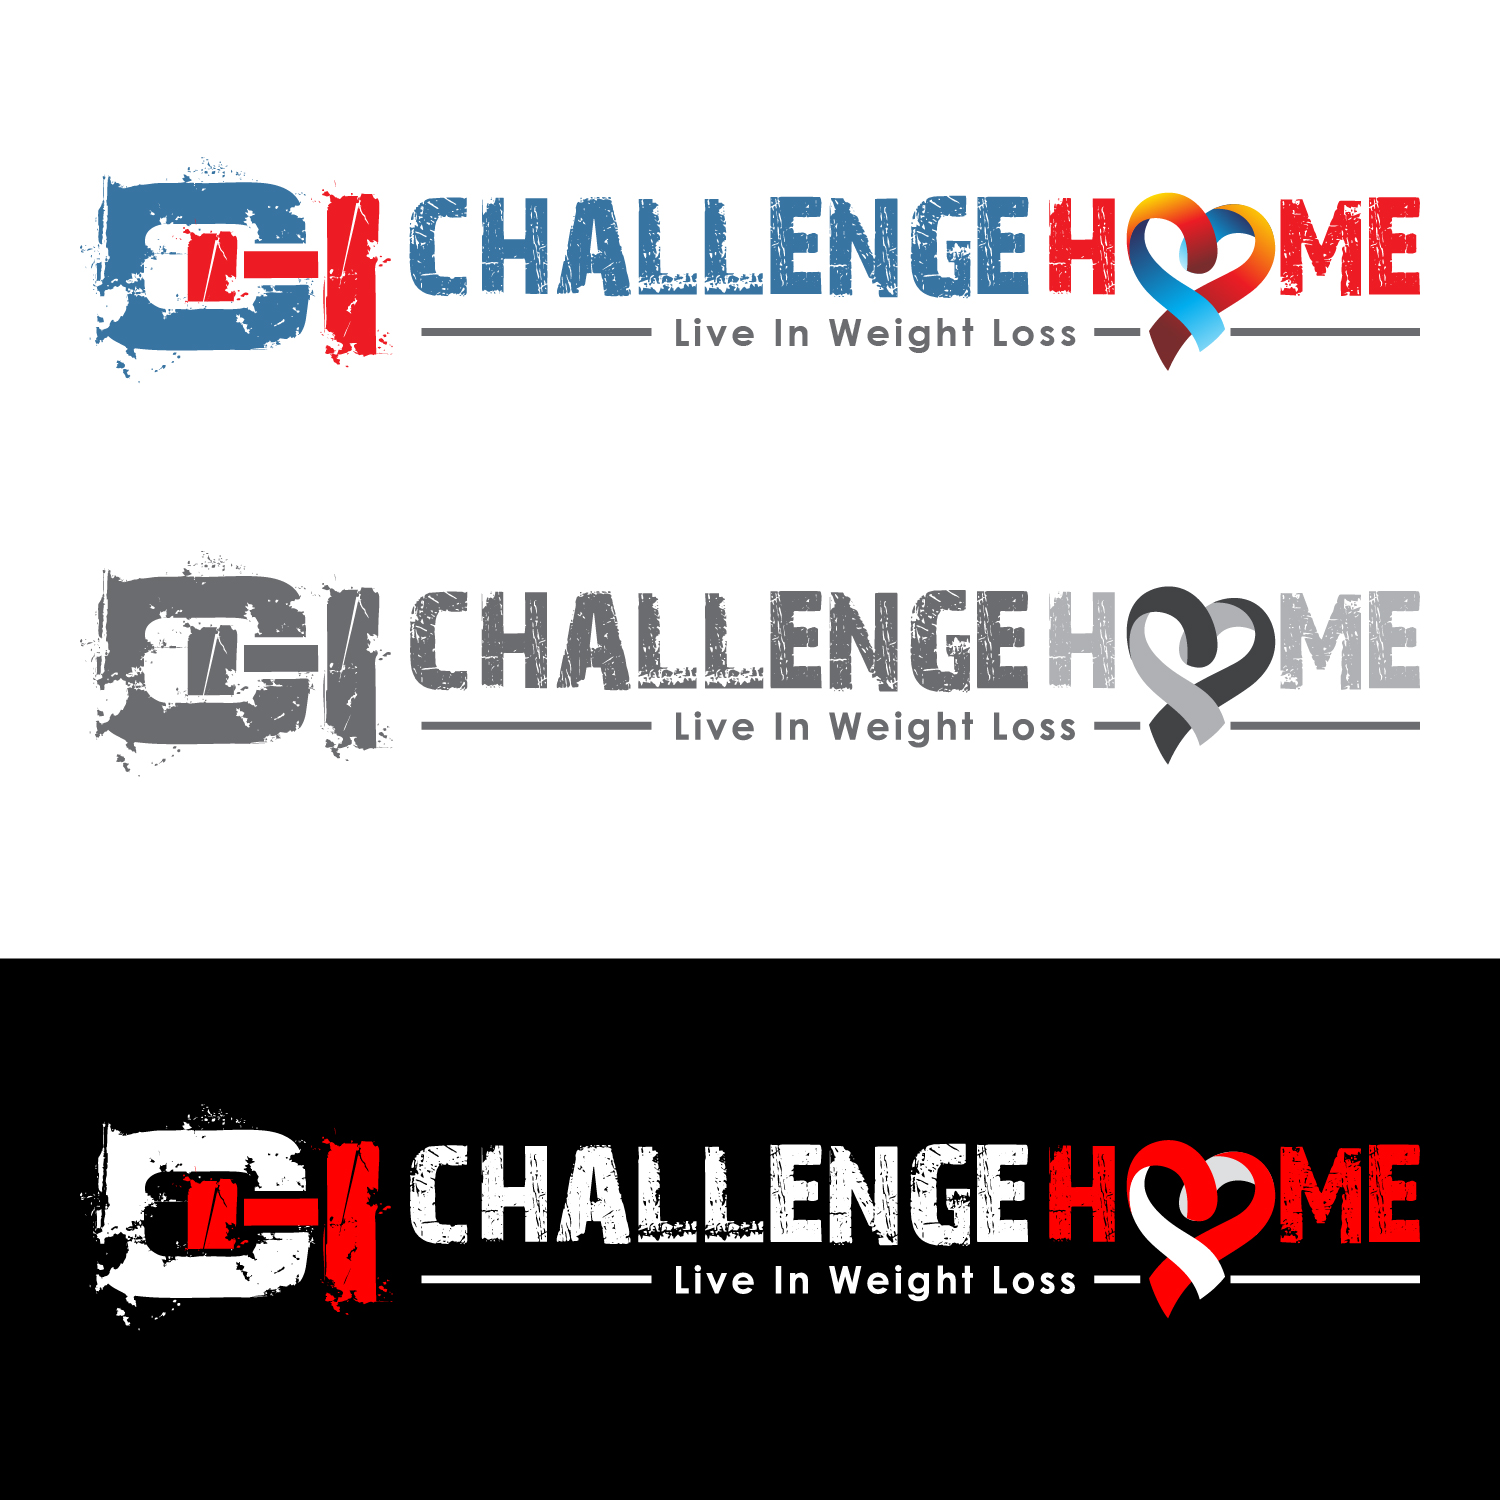 Logo Design by lagalag - Entry No. 65 in the Logo Design Contest Unique Logo Design Wanted for Challenge Home.